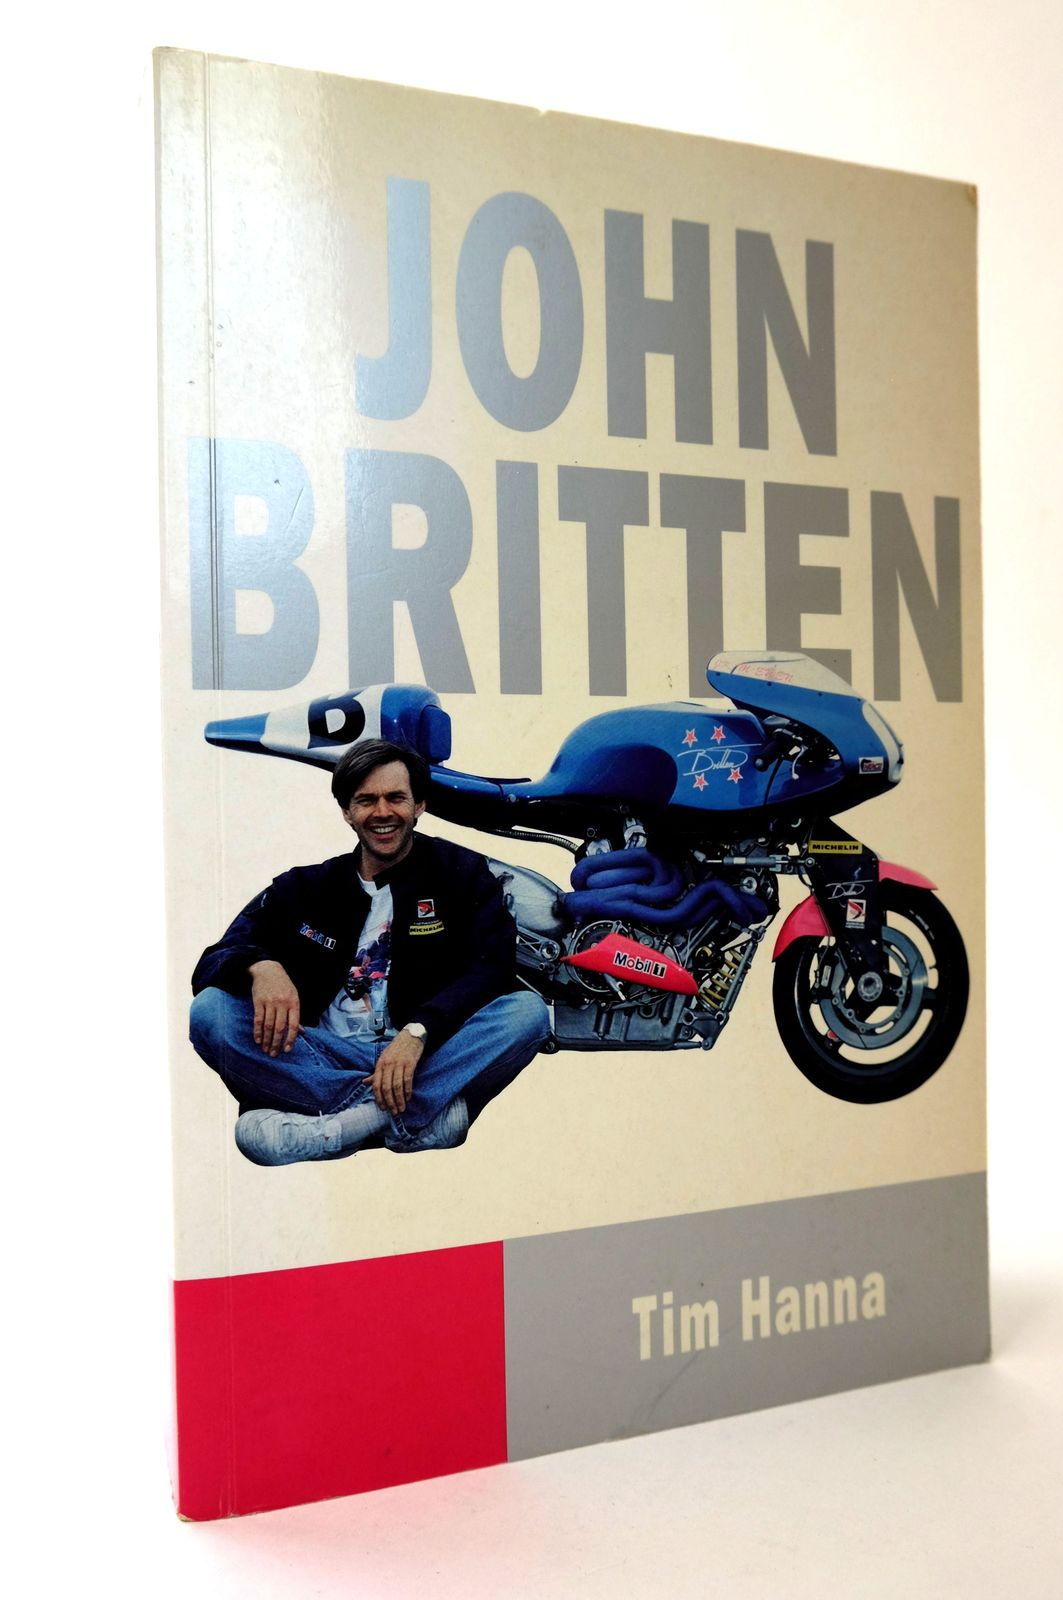 Photo of JOHN BRITTEN written by Hanna, Tim published by Craig Potton Publishing (STOCK CODE: 1818760)  for sale by Stella & Rose's Books